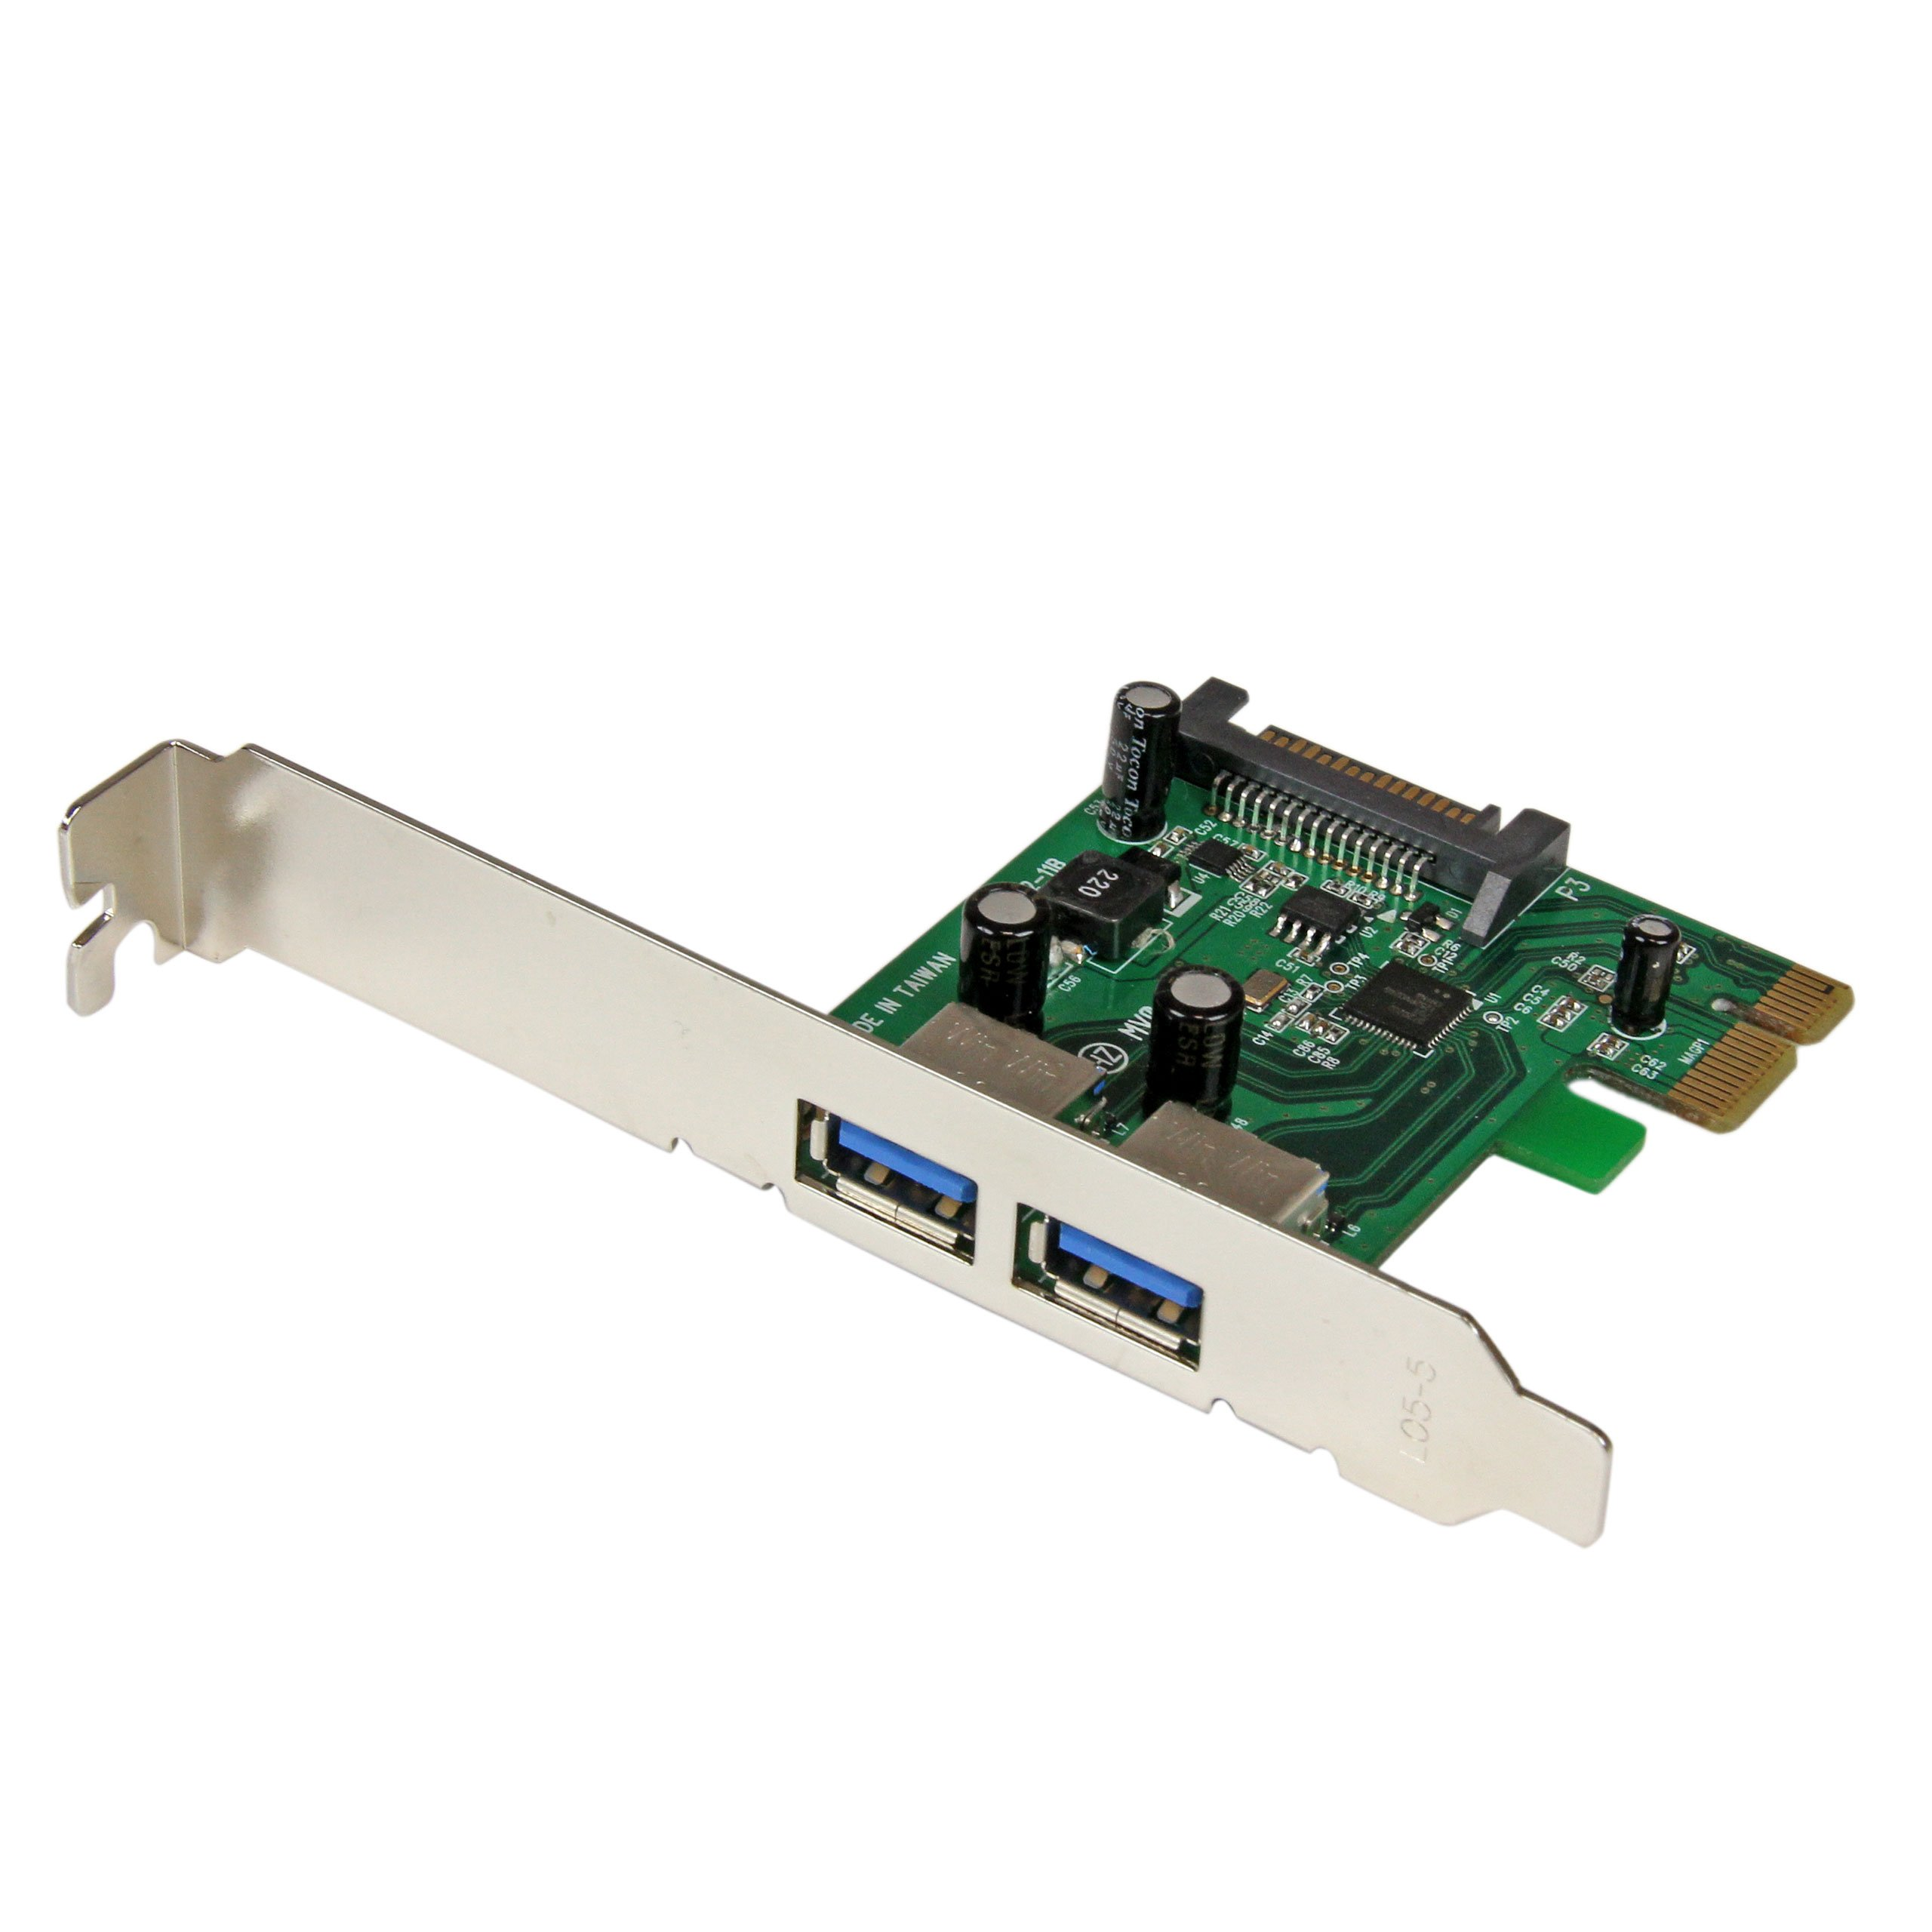 2 Port PCI Express (PCIe) SuperSpeed USB 3.0 Card Adapter with UASP - SATA Power - Dual Port USB 3 PCIe Controller